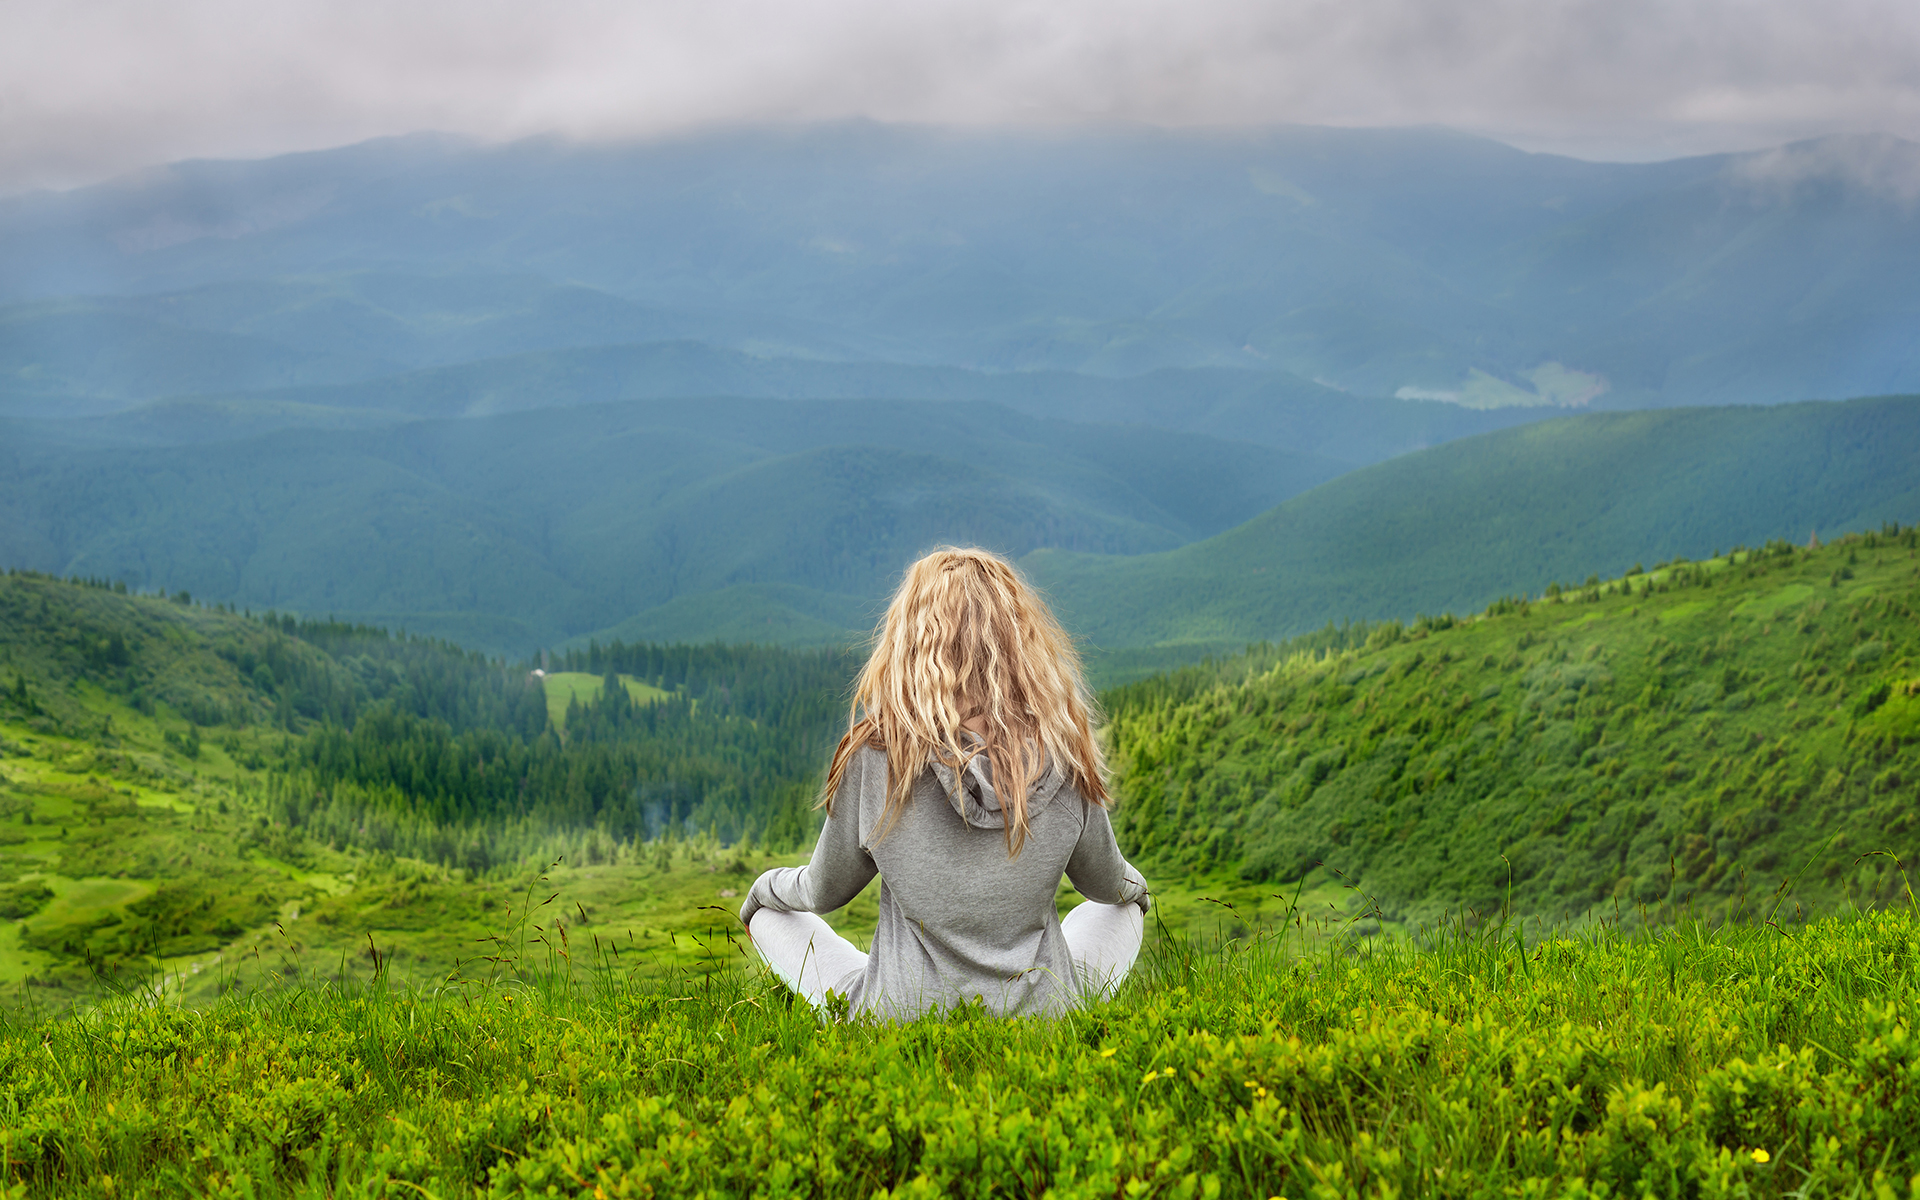 New research on mindfulness meditation: June Issue 2020 - Woman sitting in mindfulness meditation in the Carpathian mountains.